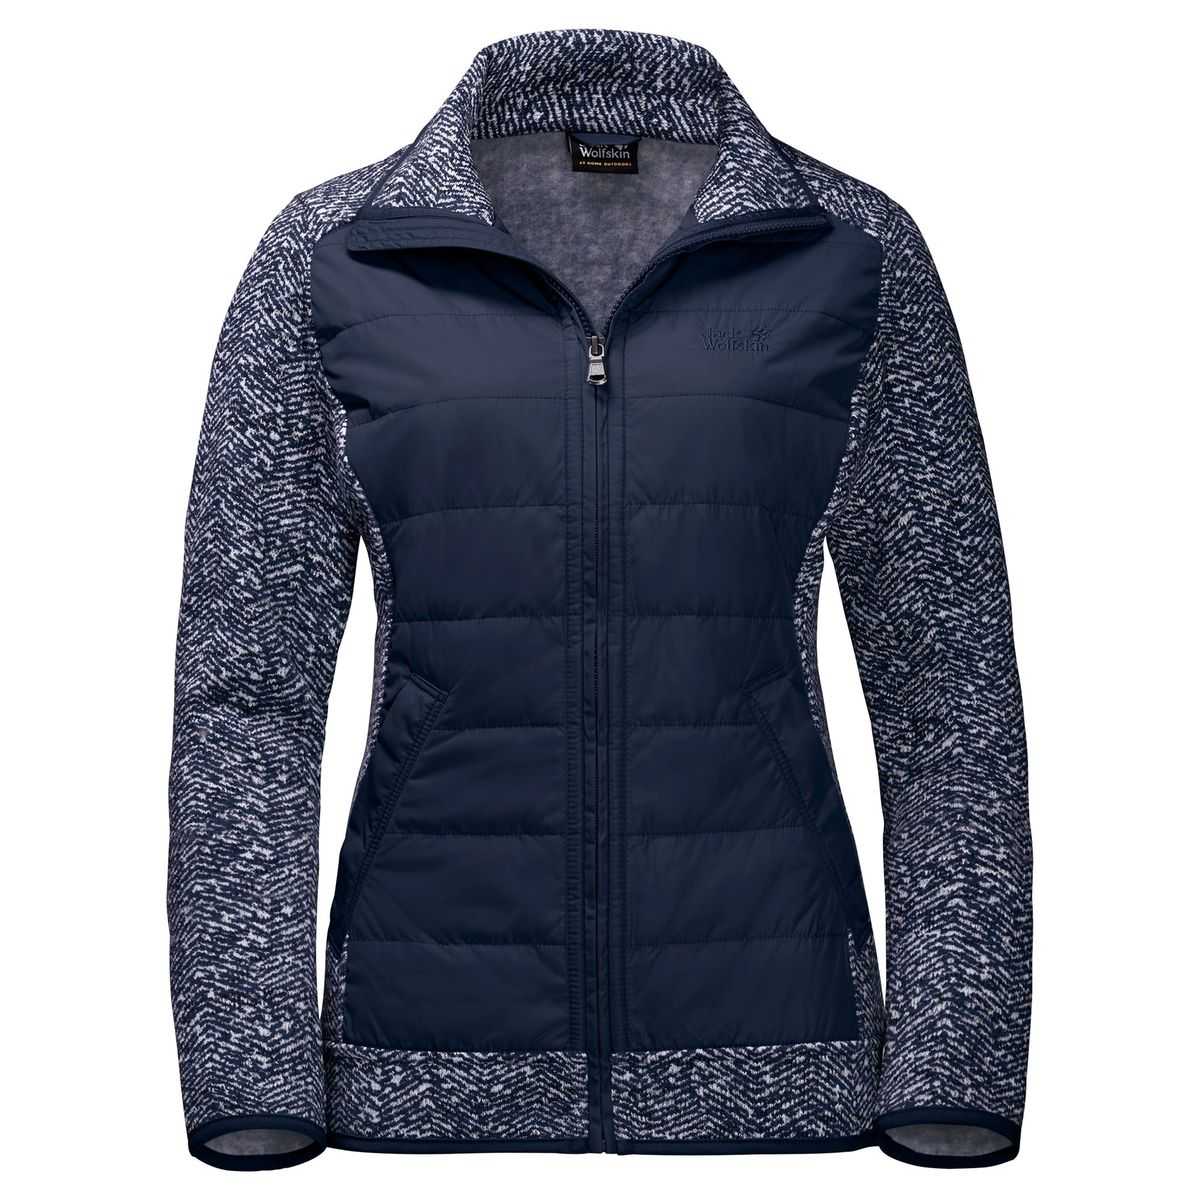 BELLEVILLE CROSSING women's jacket